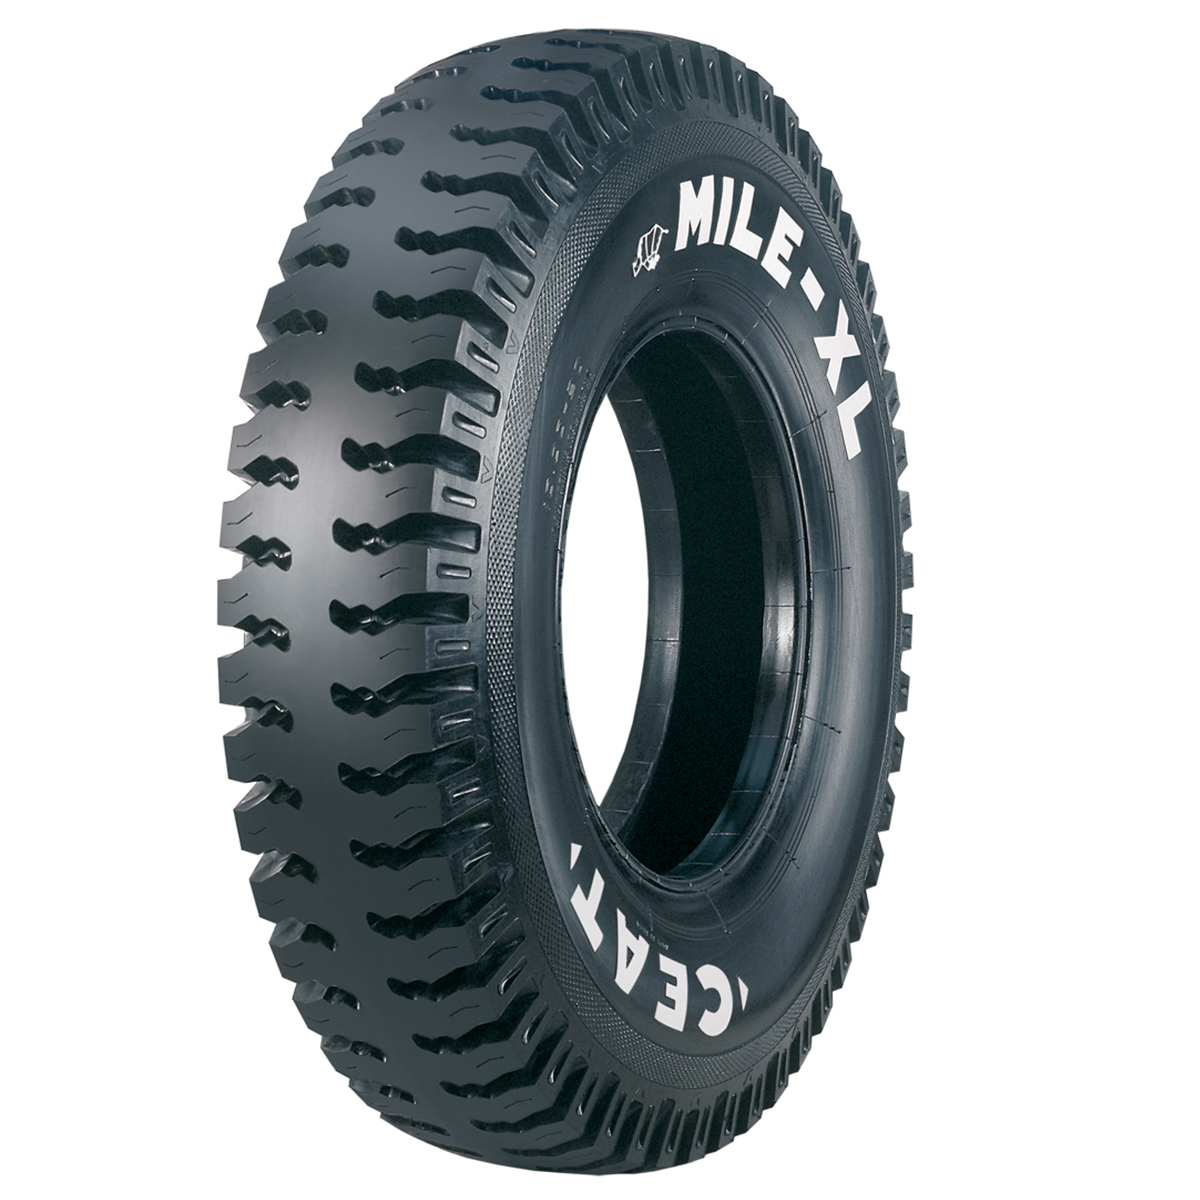 CEAT MILE XL RIB 165/ R 12 Requires Tube 88 J Car Tyre